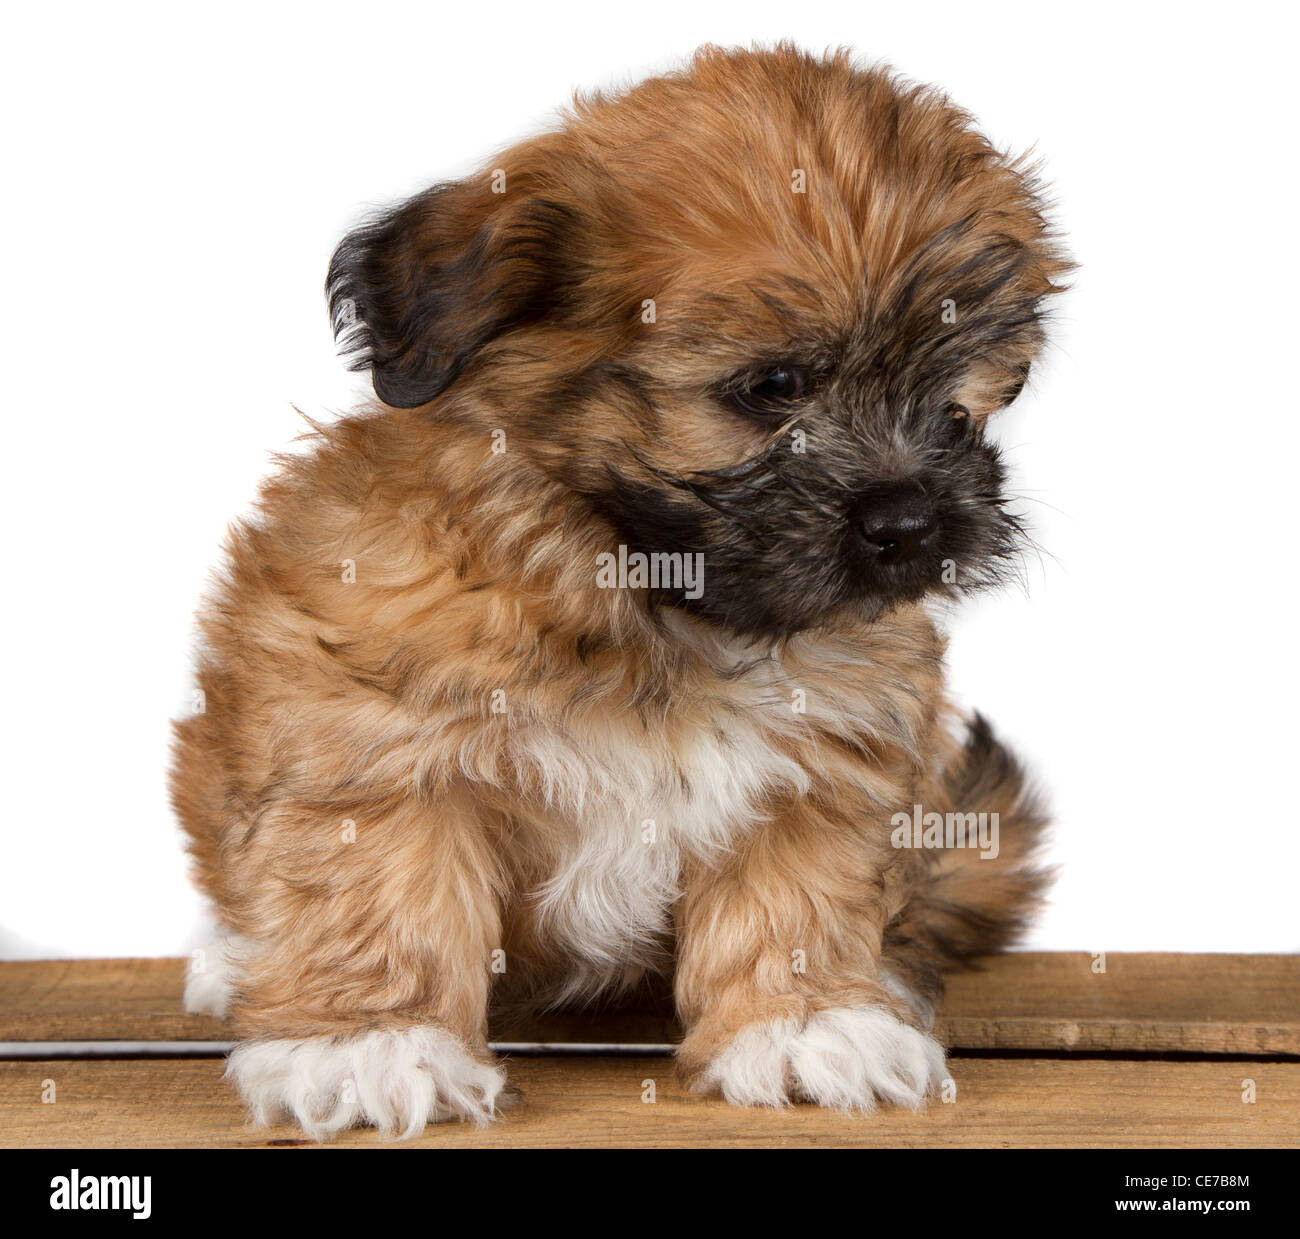 Best Fluffy Brown Adorable Dog - a-cute-brown-fluffy-puppy-sitting-on-a-plank-and-looking-down-isolated-CE7B8M  Pic_975466  .jpg